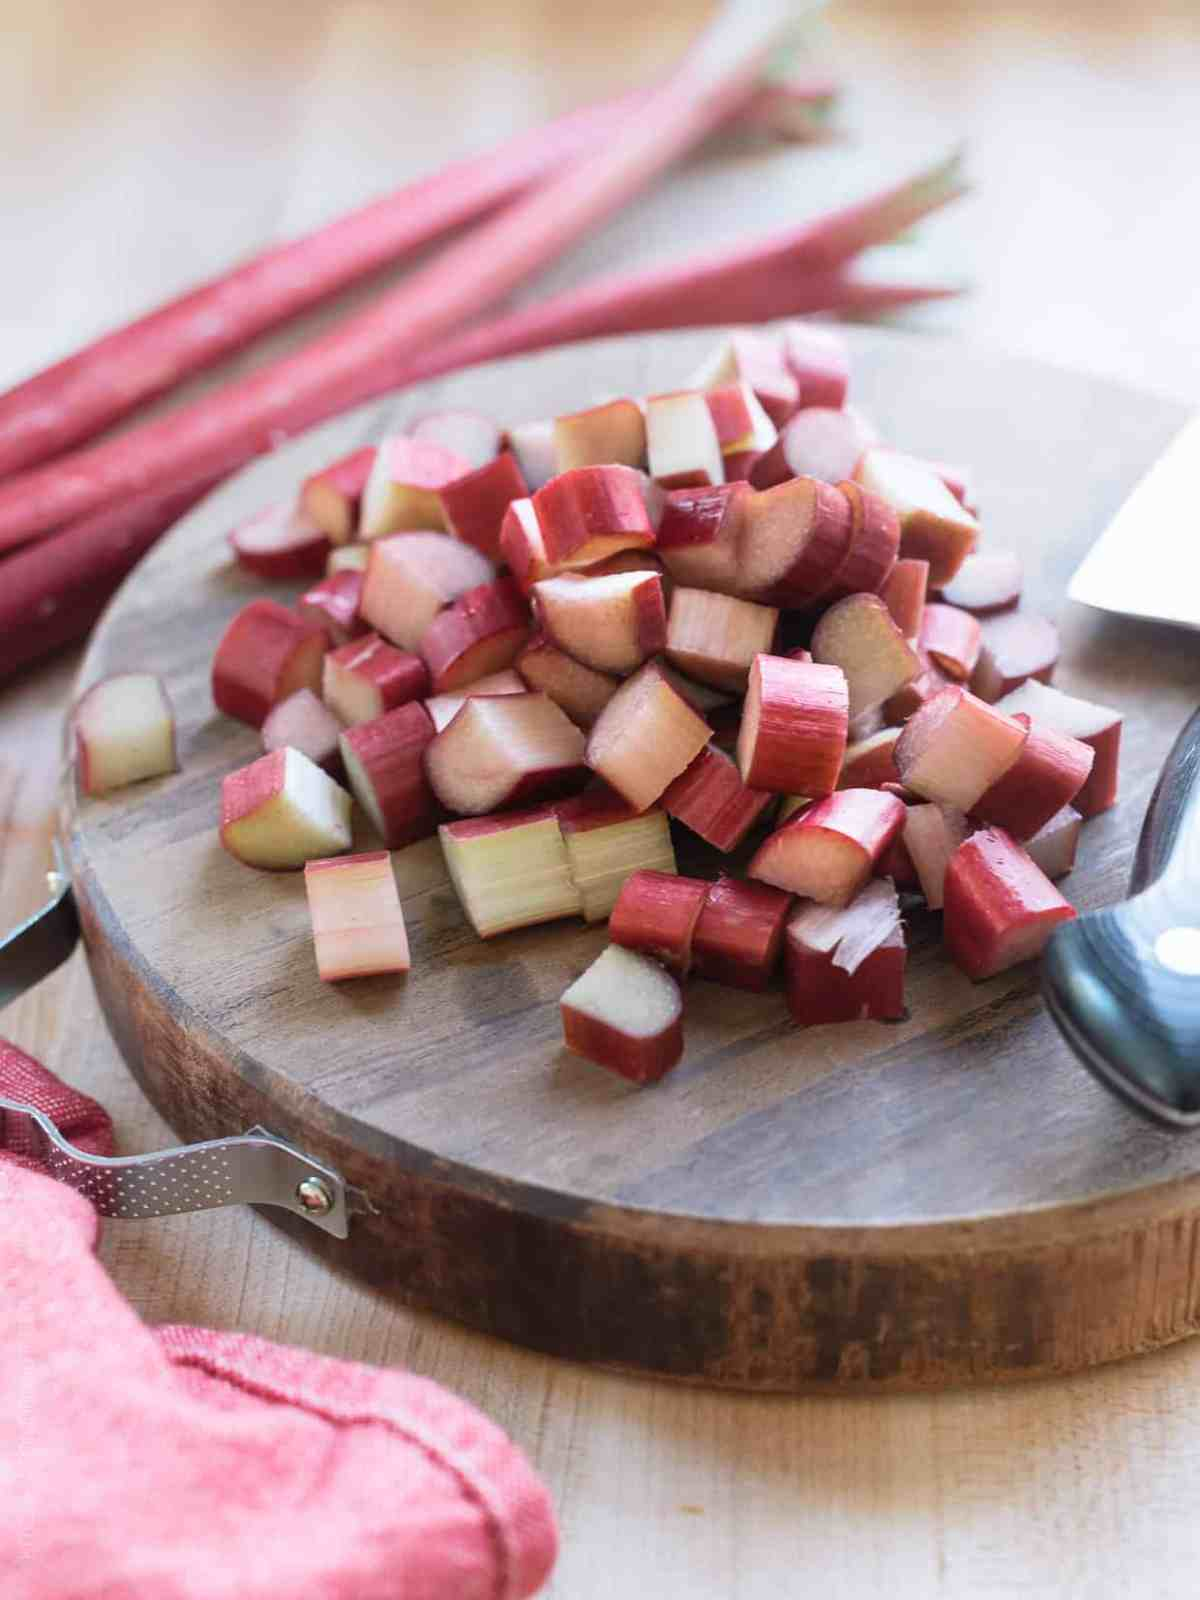 Chopped rhubarb on a wooden board with stalks of rhubarb in the background.